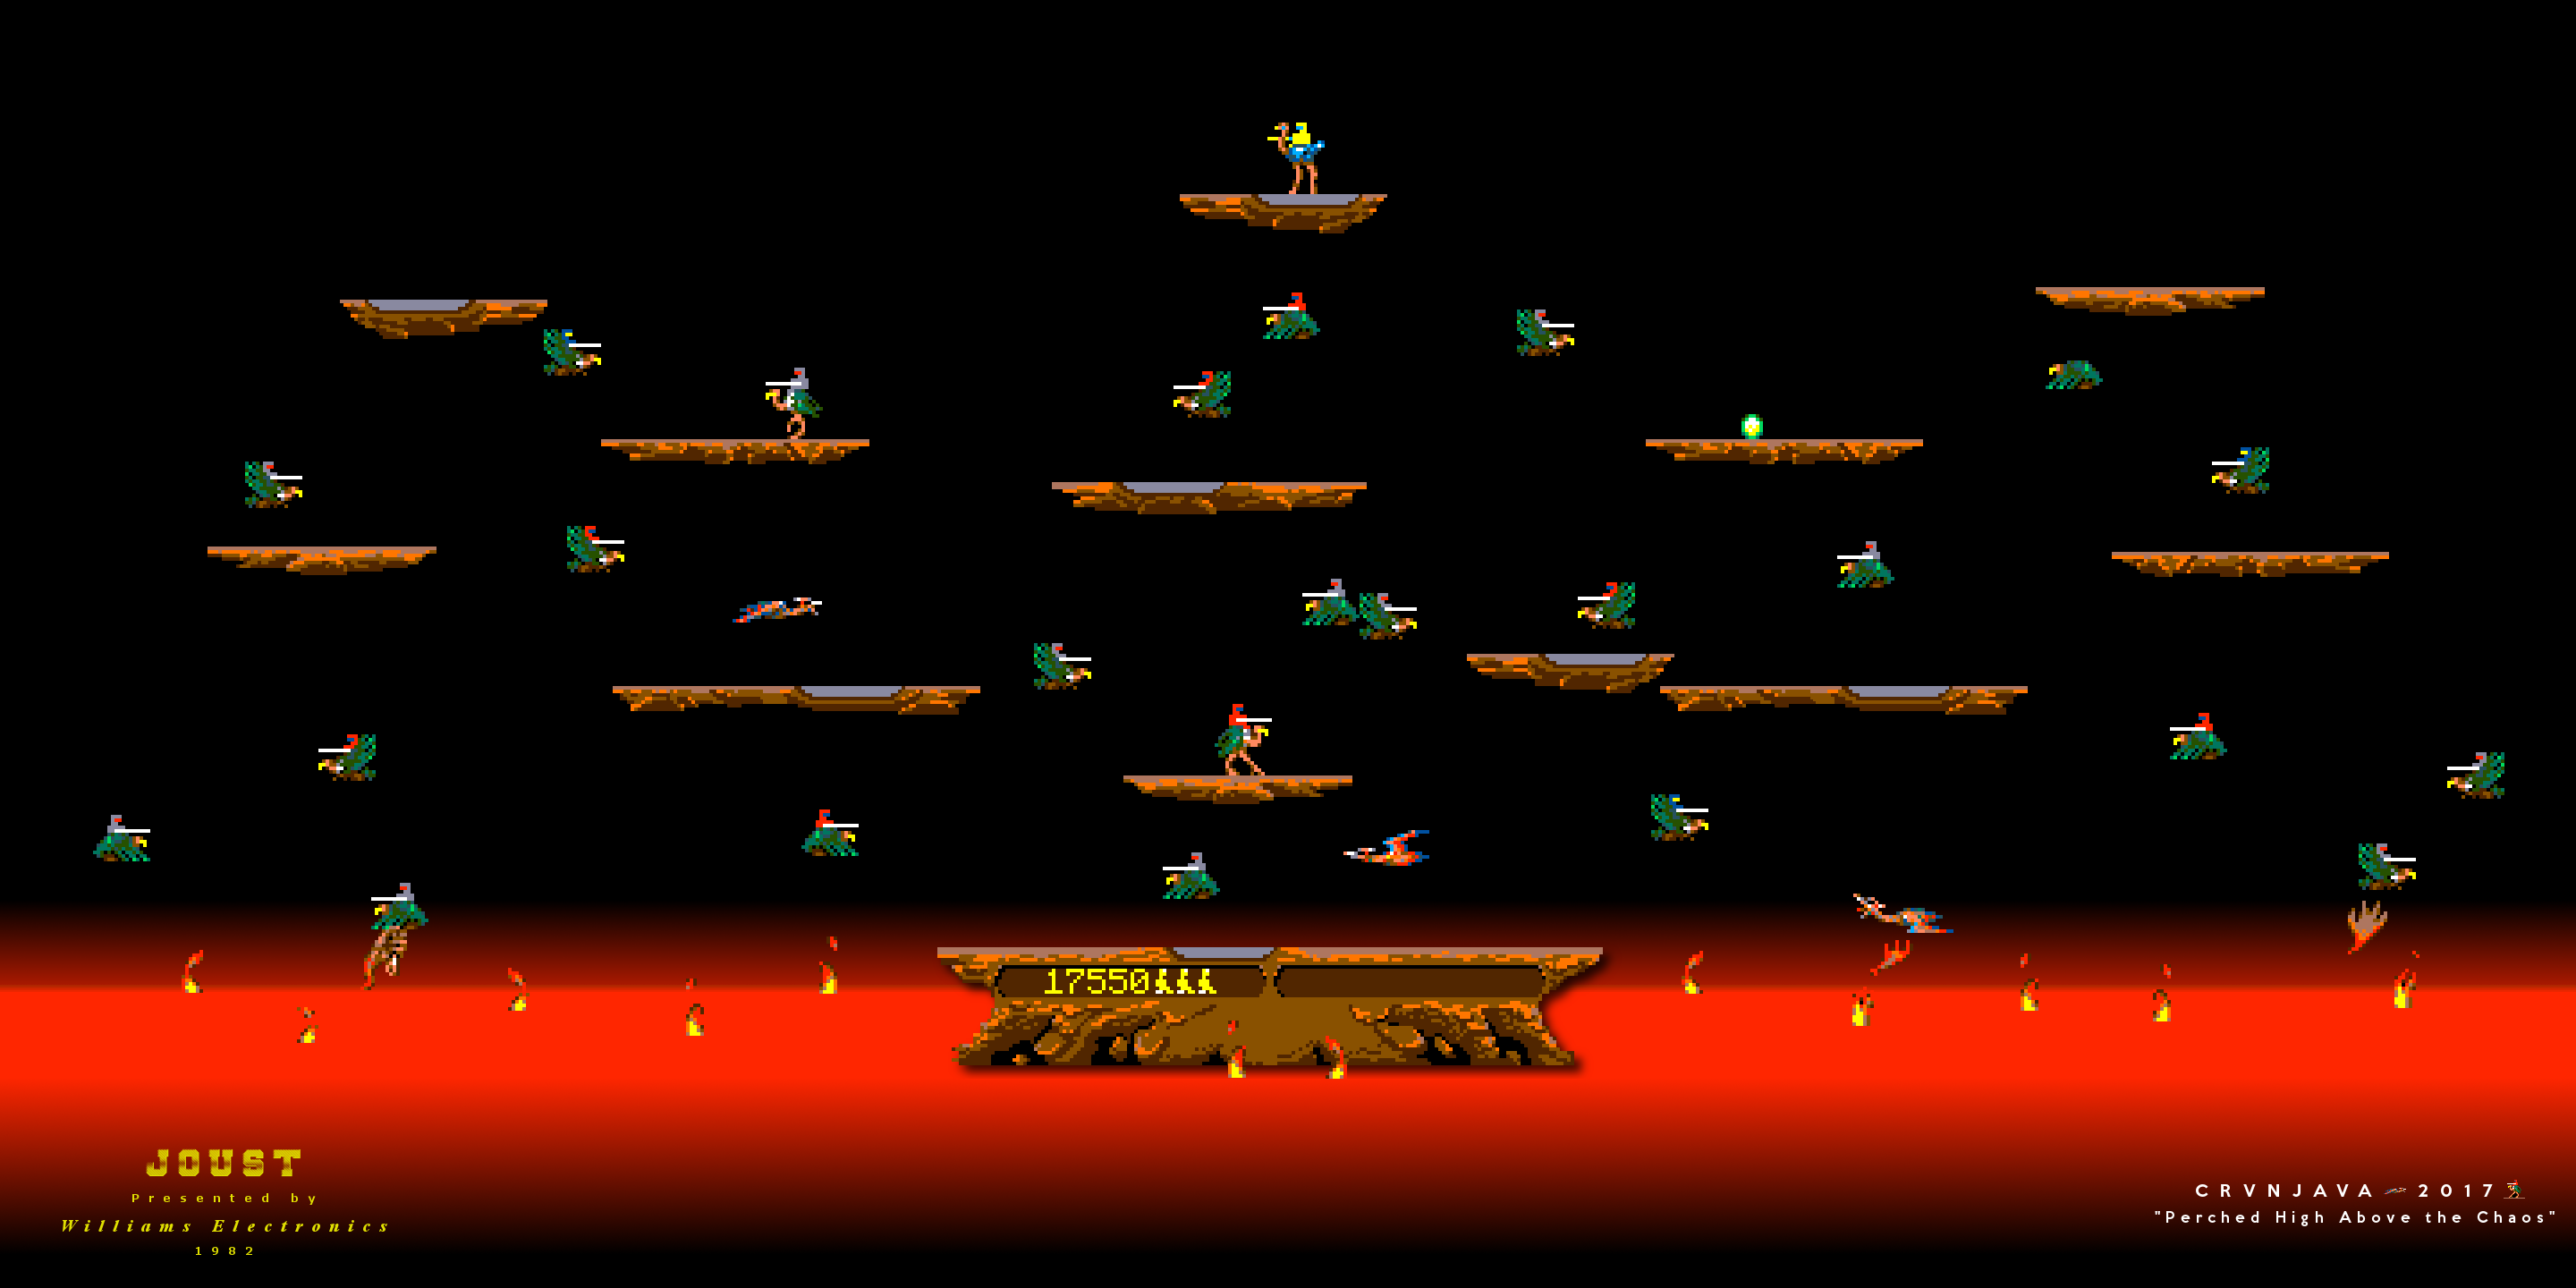 Joust Arcade Game Computer Wallpaper